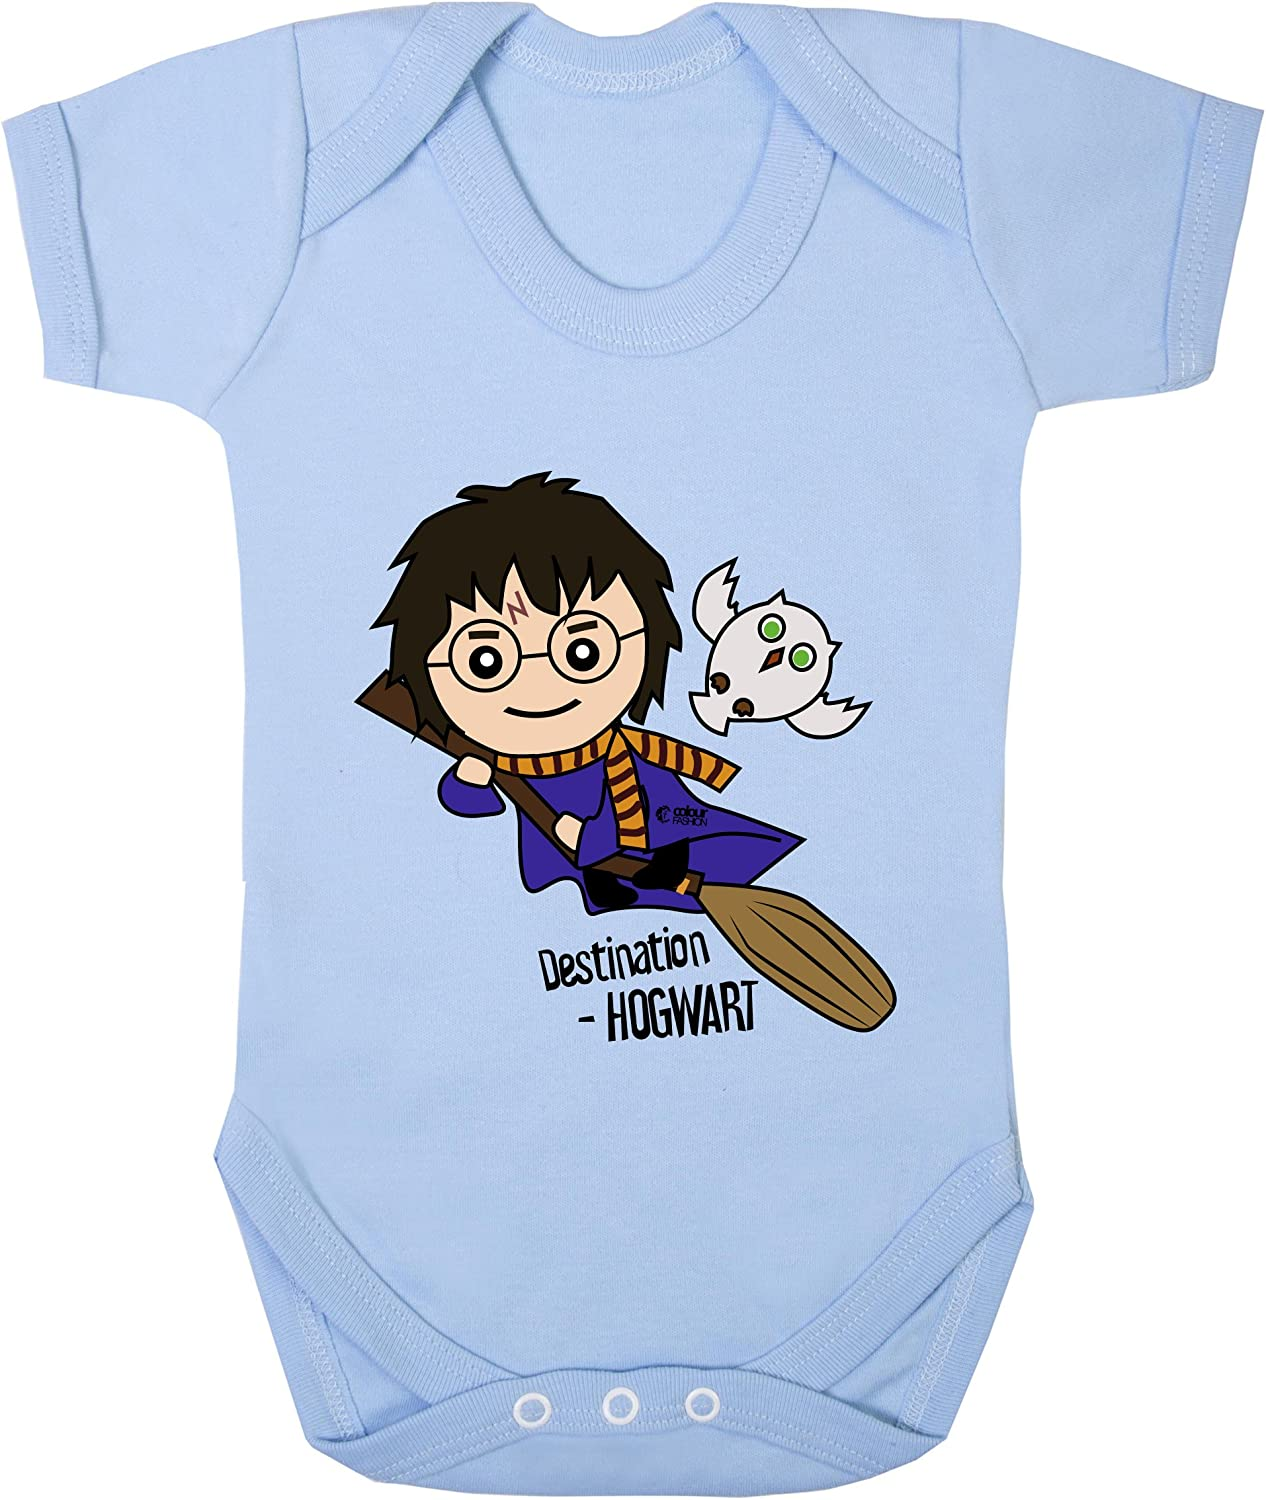 Uncanny Harry Potter with Owl Funny Print Costume Bodysuits 100/% Cotton 0-24